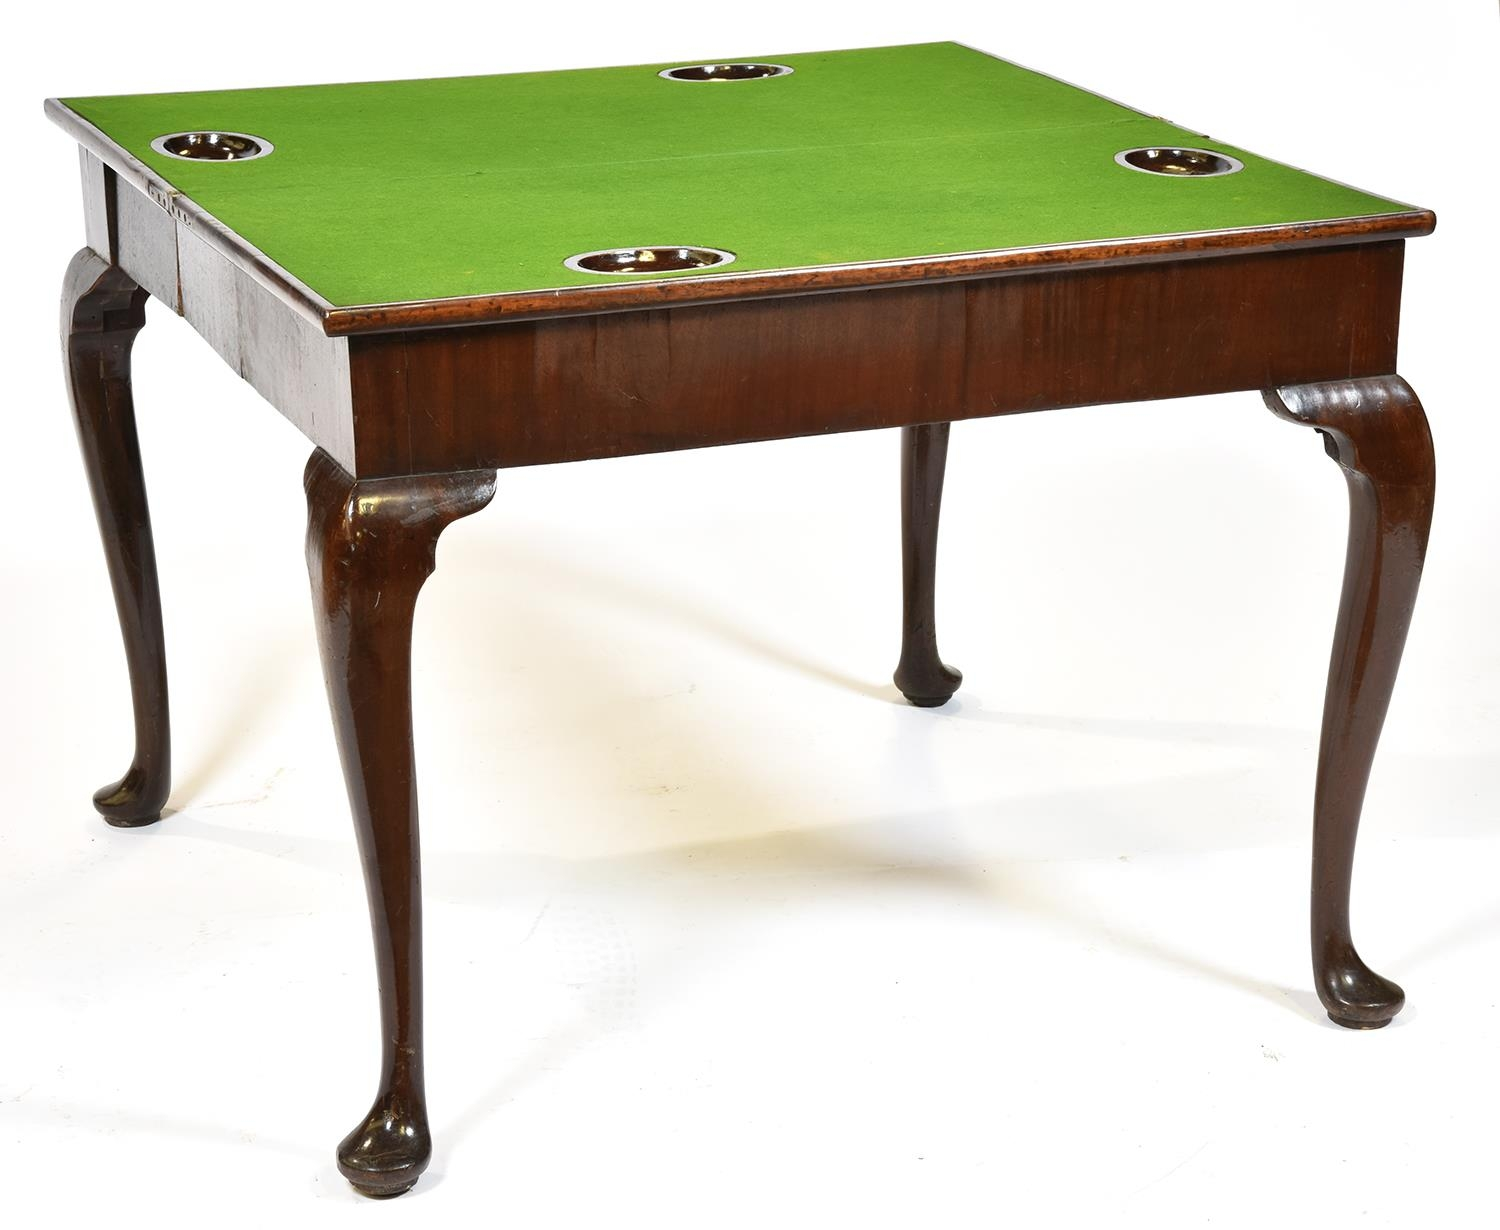 A George III concertina-action mahogany card table, mid 18th c, the top with counter wells on - Image 2 of 2